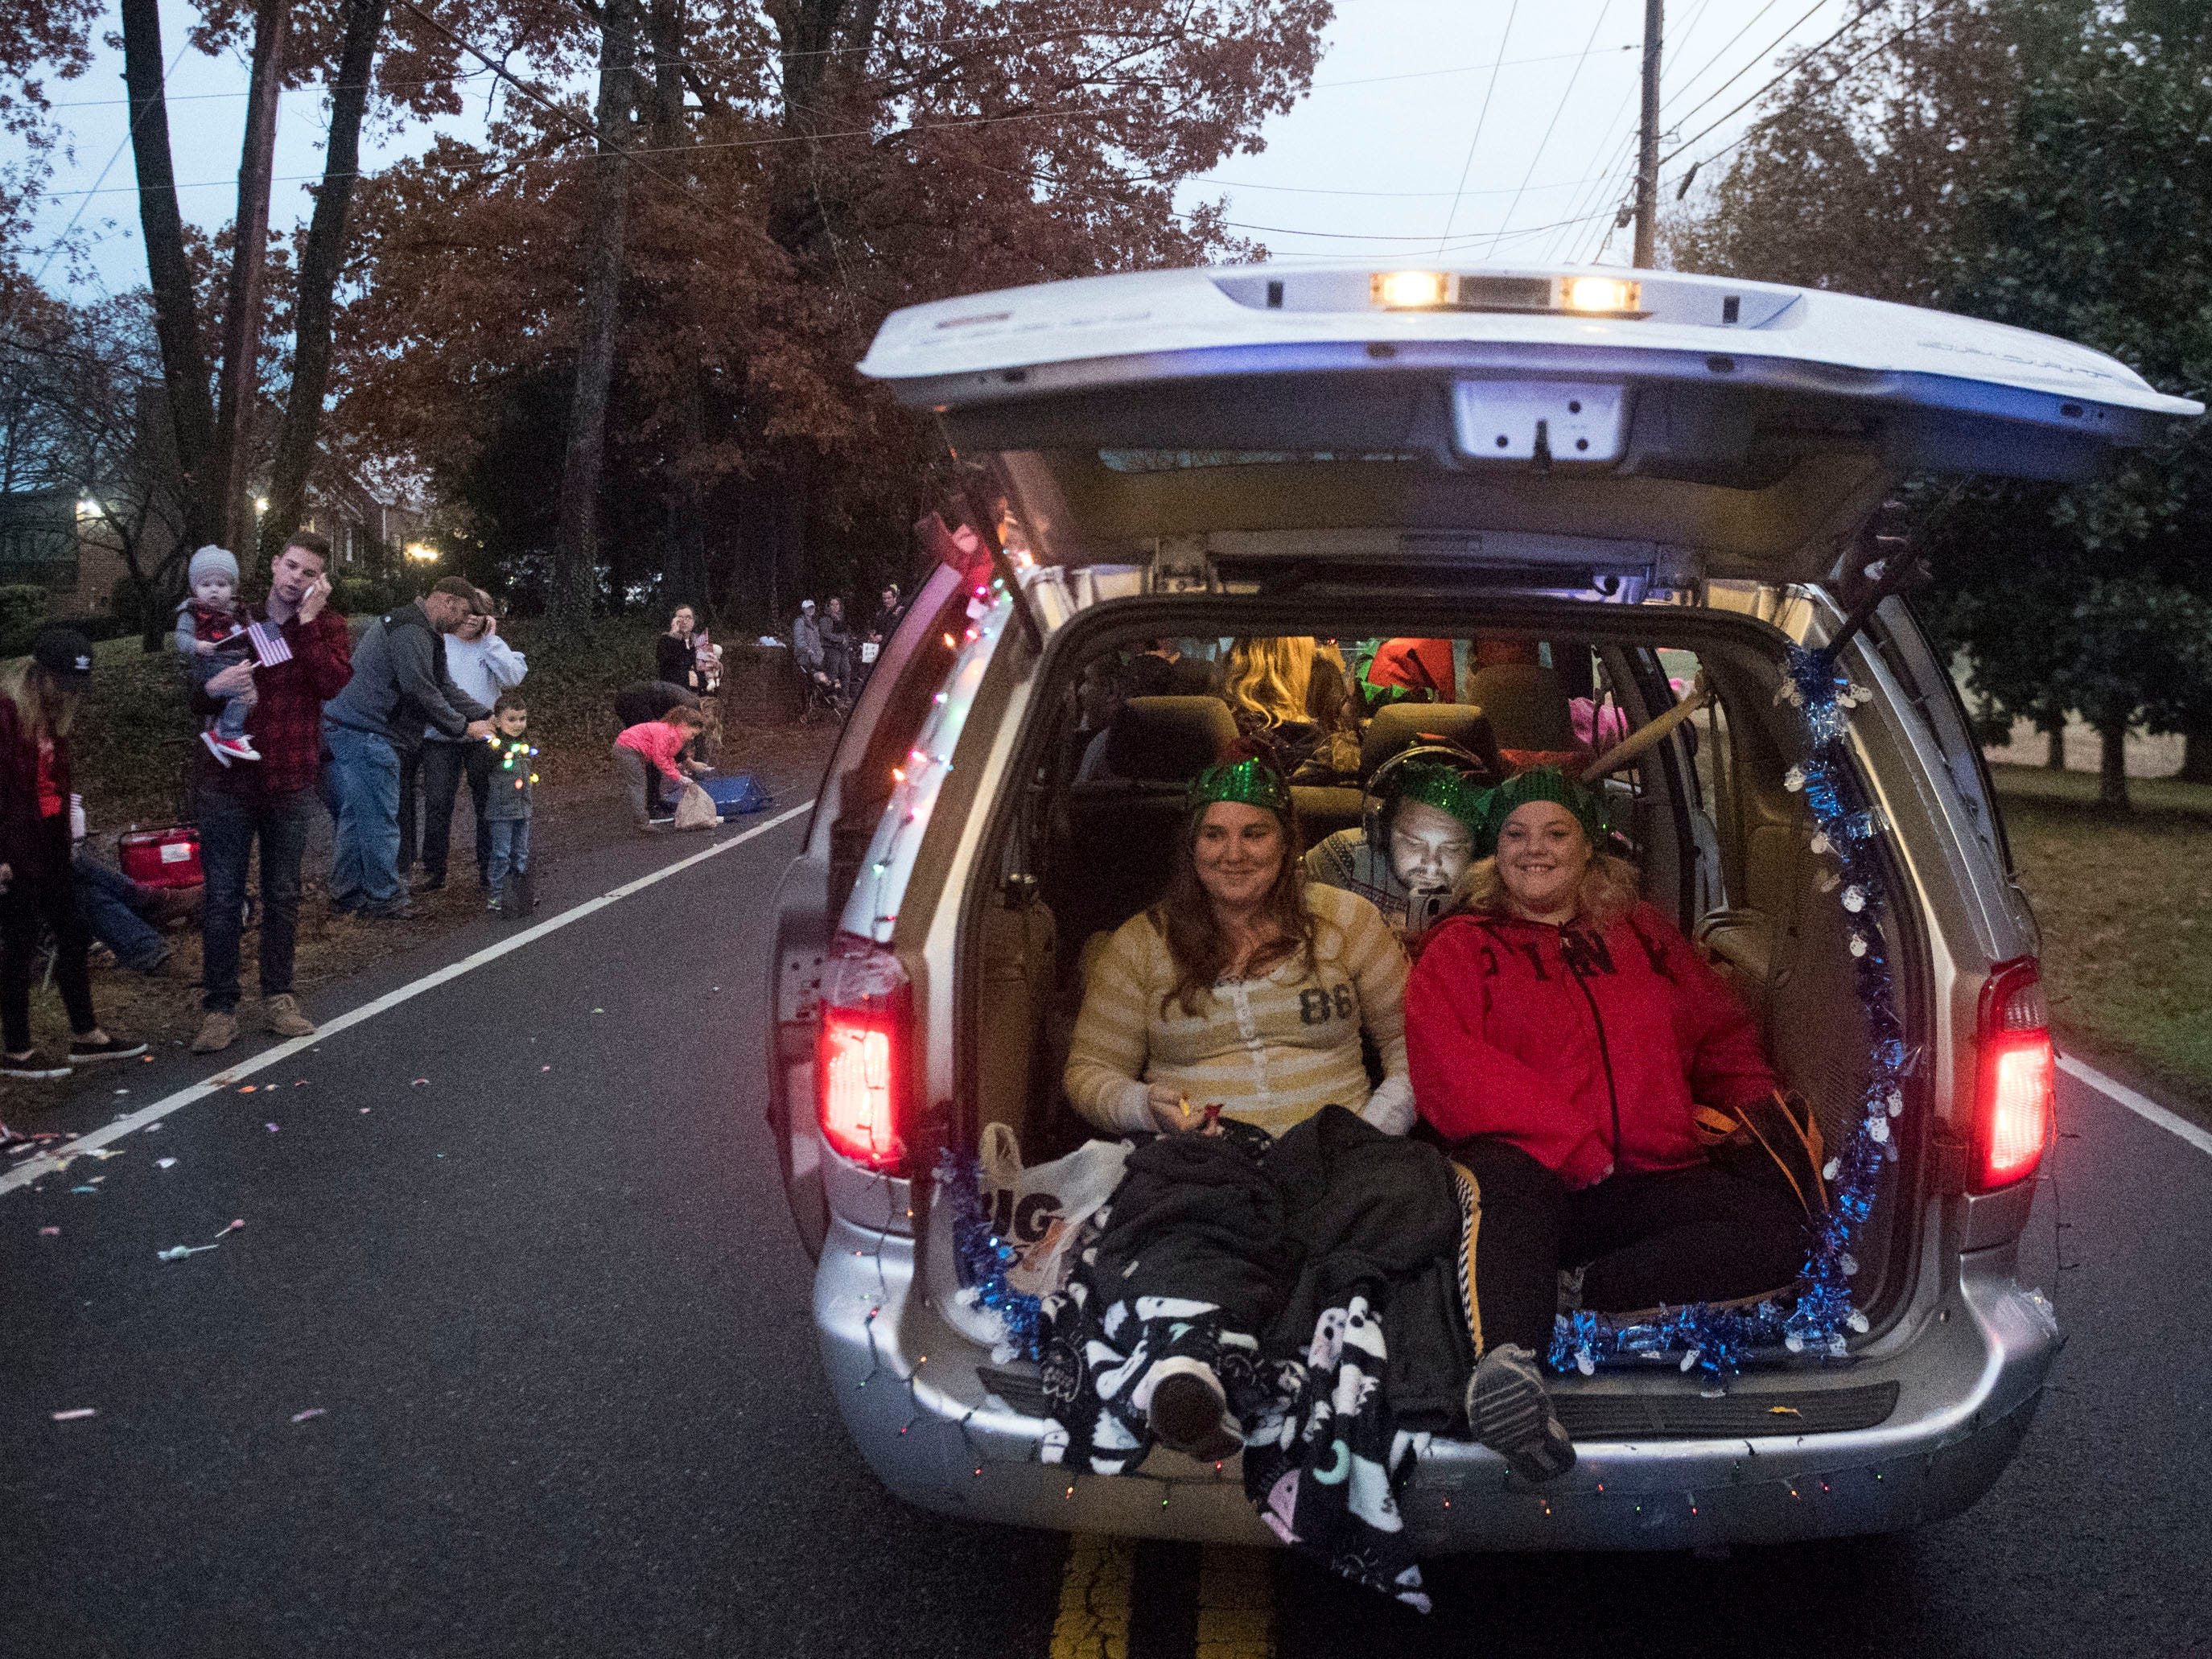 Powell Lions Club Christmas Parade participants throw candy from the back of a van on Saturday, December 1, 2018.